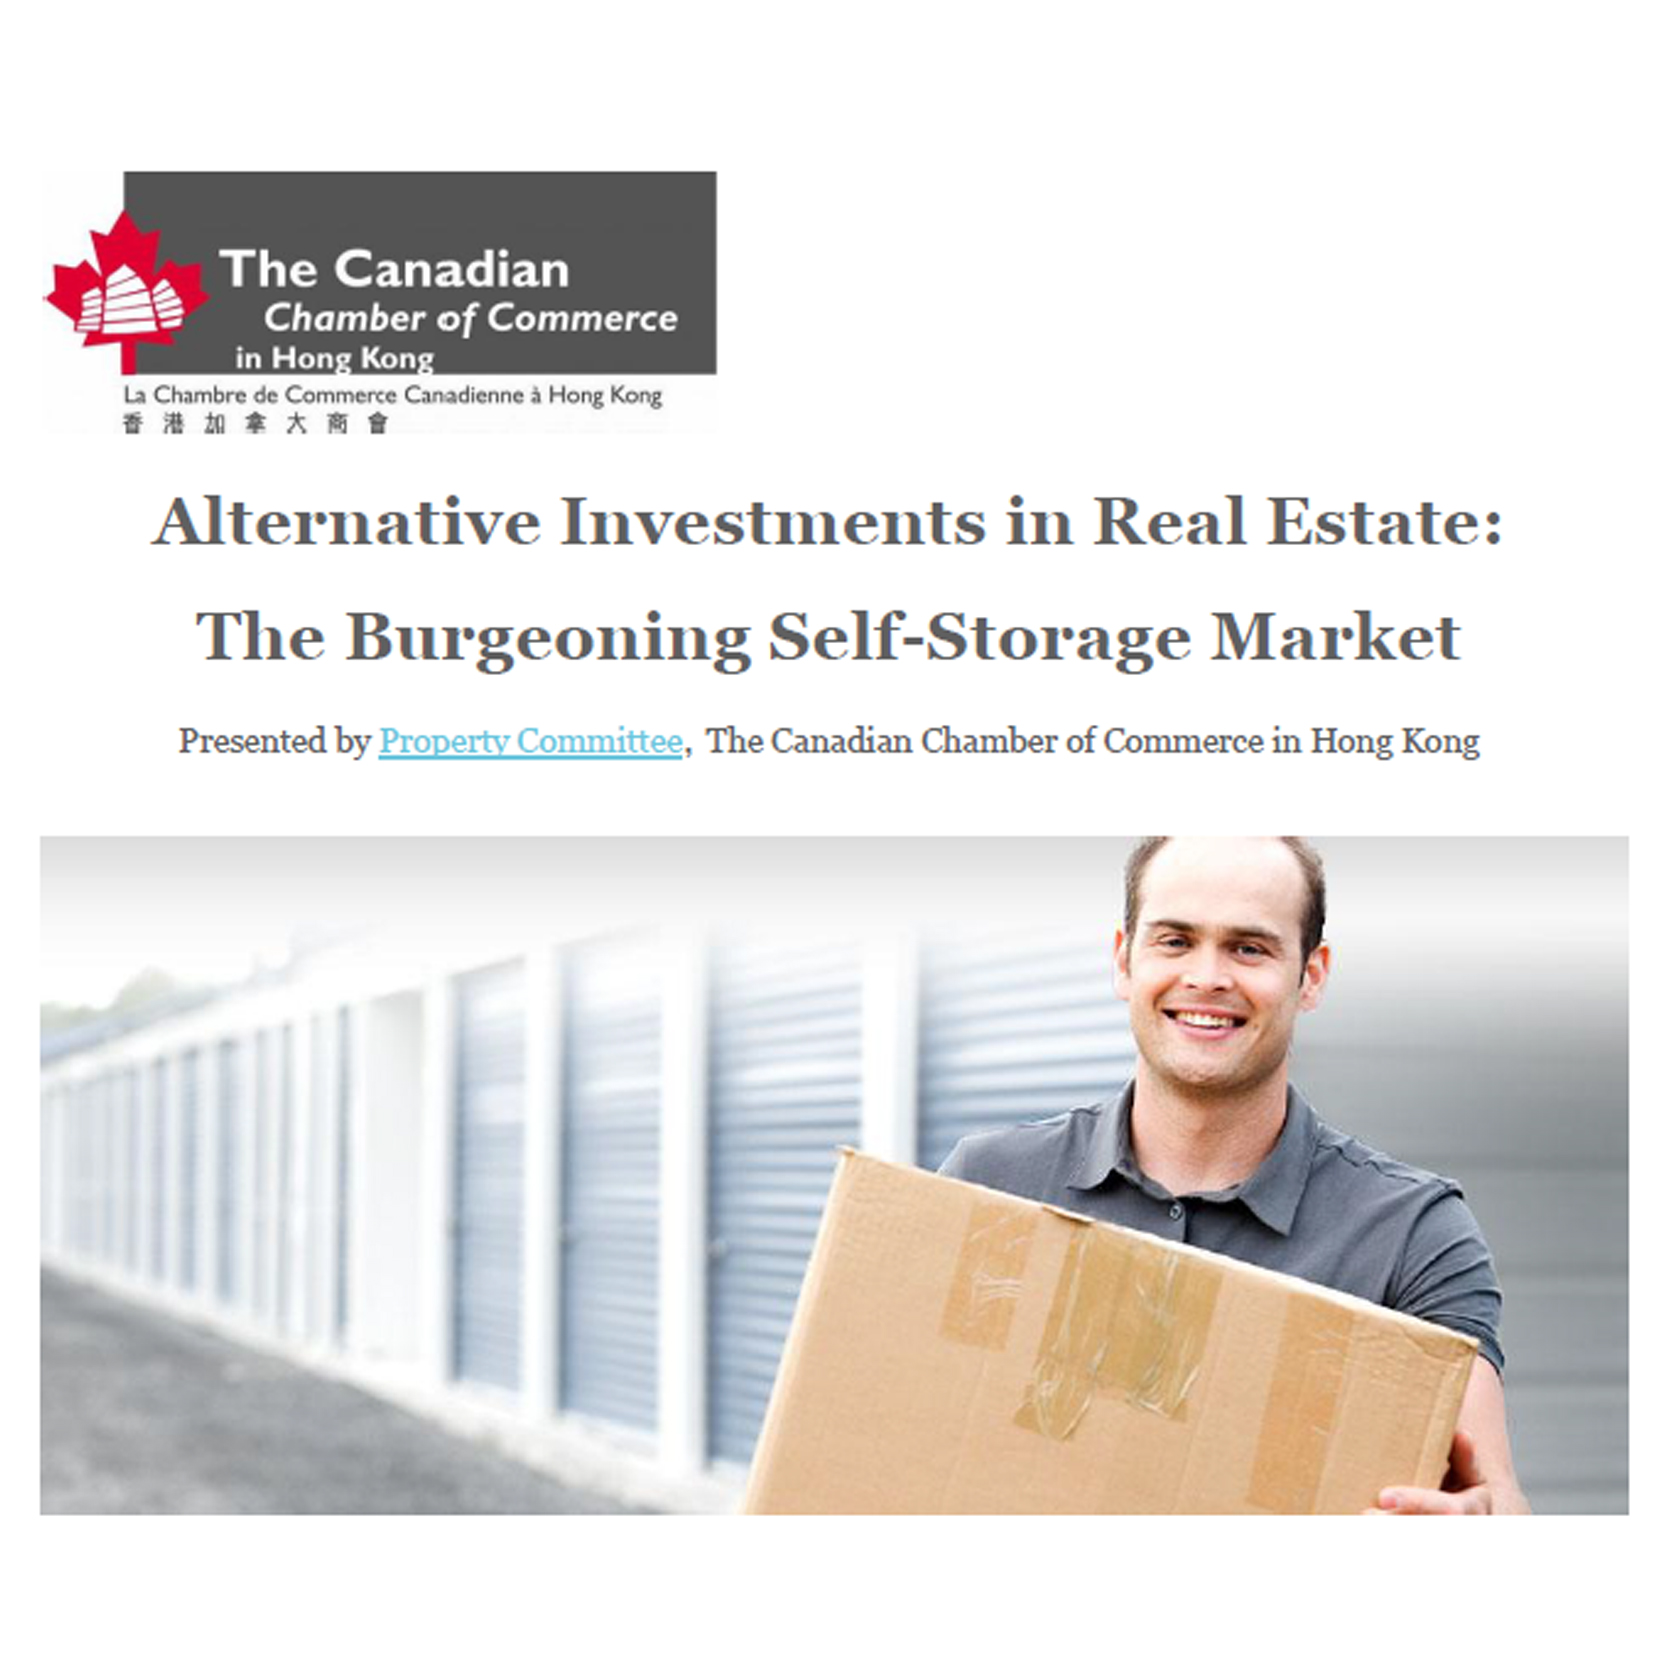 Jun 5 - Alternative Investments in Real Estate: The Burgeoning Self-Storage Market